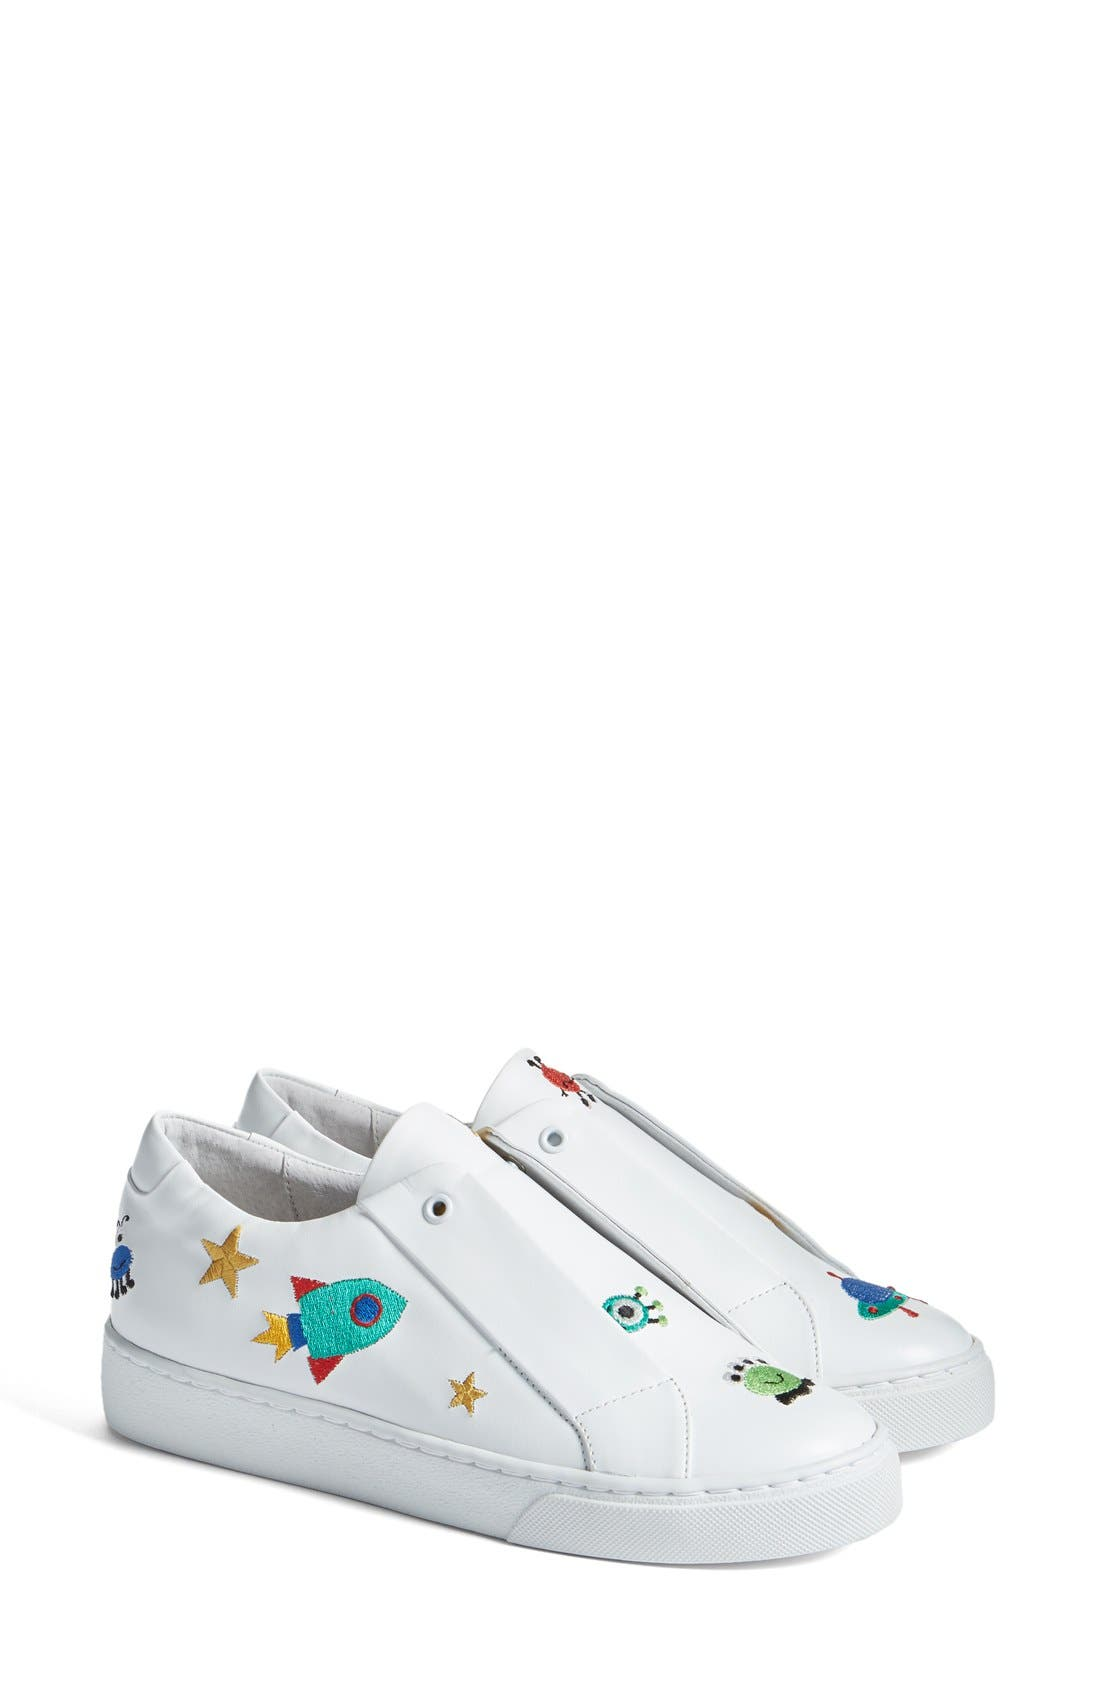 Halley Slip-On Sneaker,                             Main thumbnail 1, color,                             White Leather